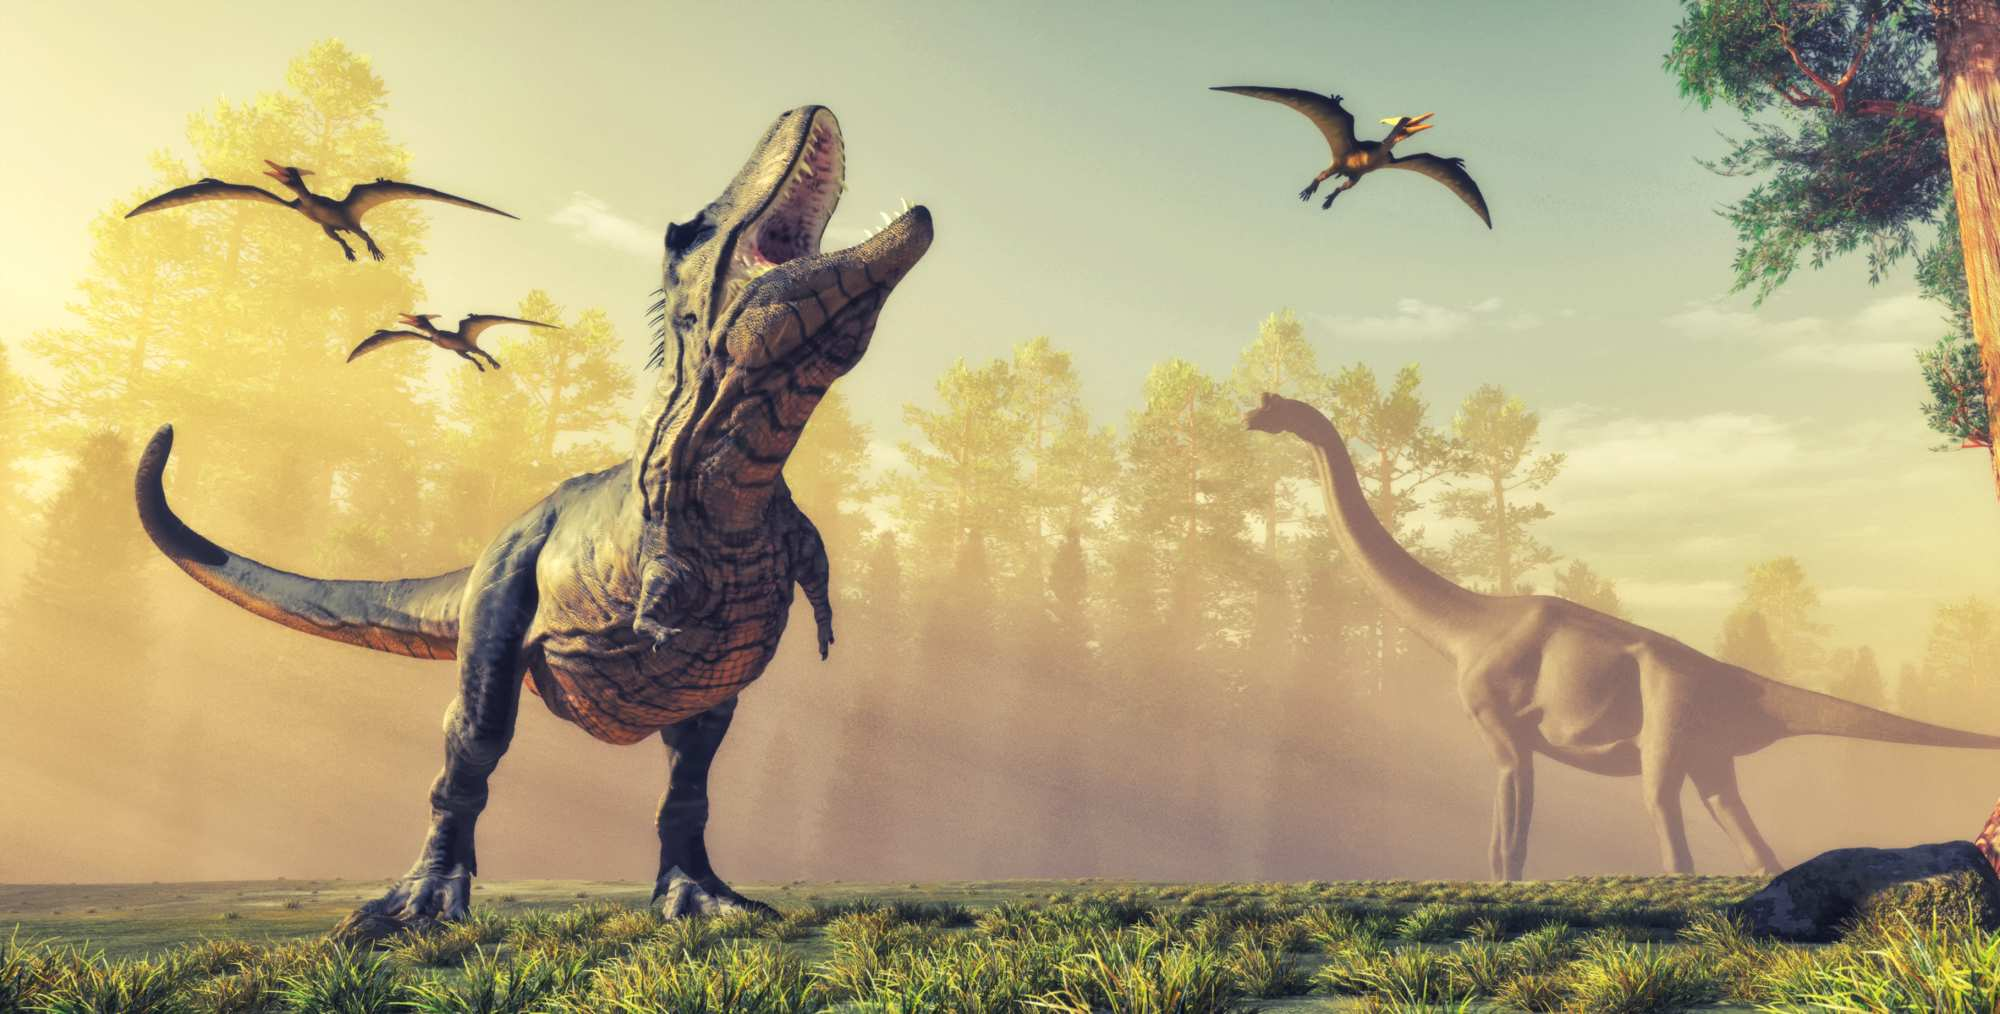 Dinosaurs from prehistoric period